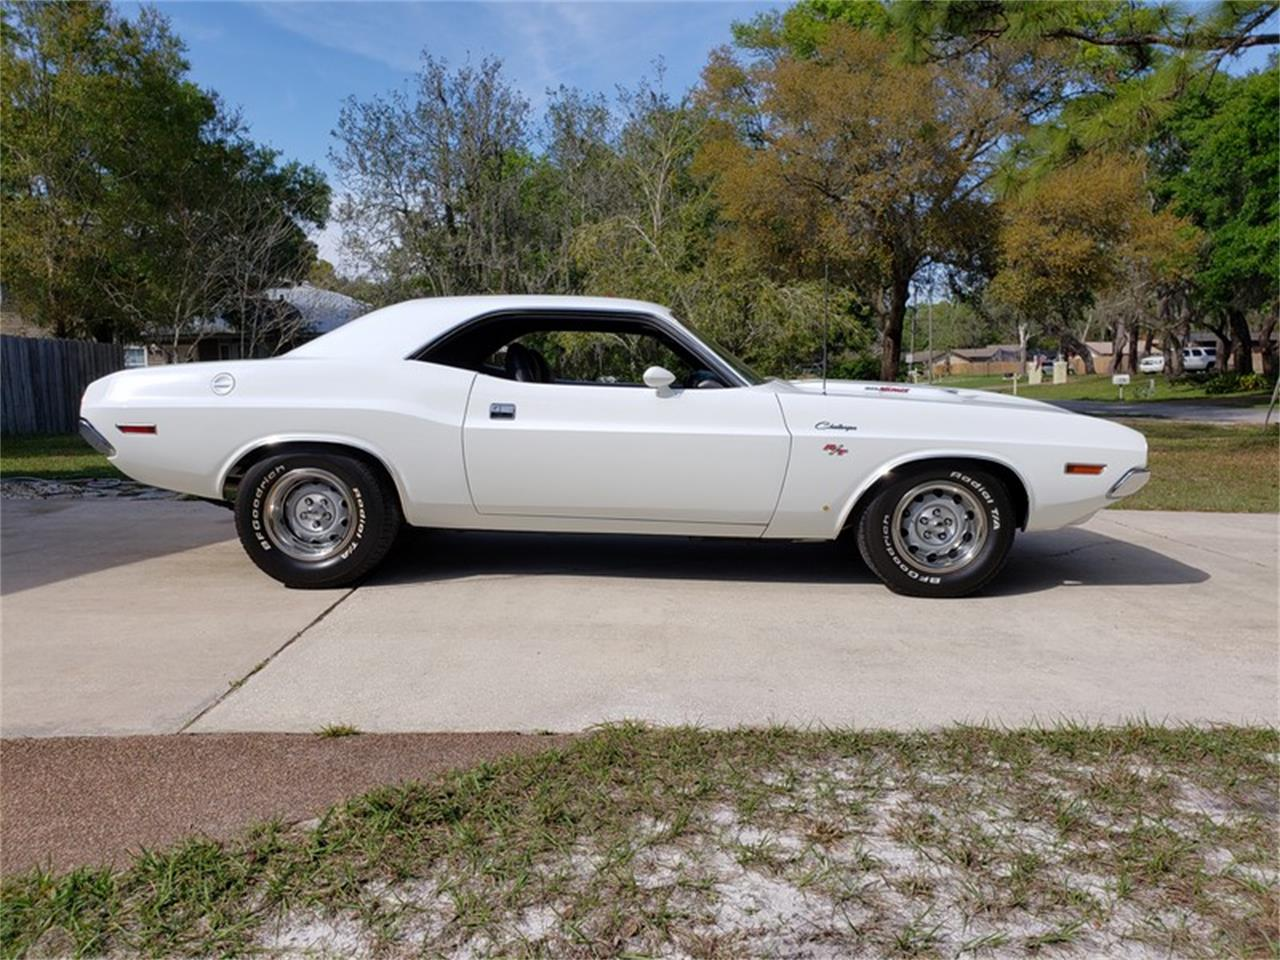 Large Picture of '70 Challenger R/T - $69,500.00 Offered by a Private Seller - Q72C